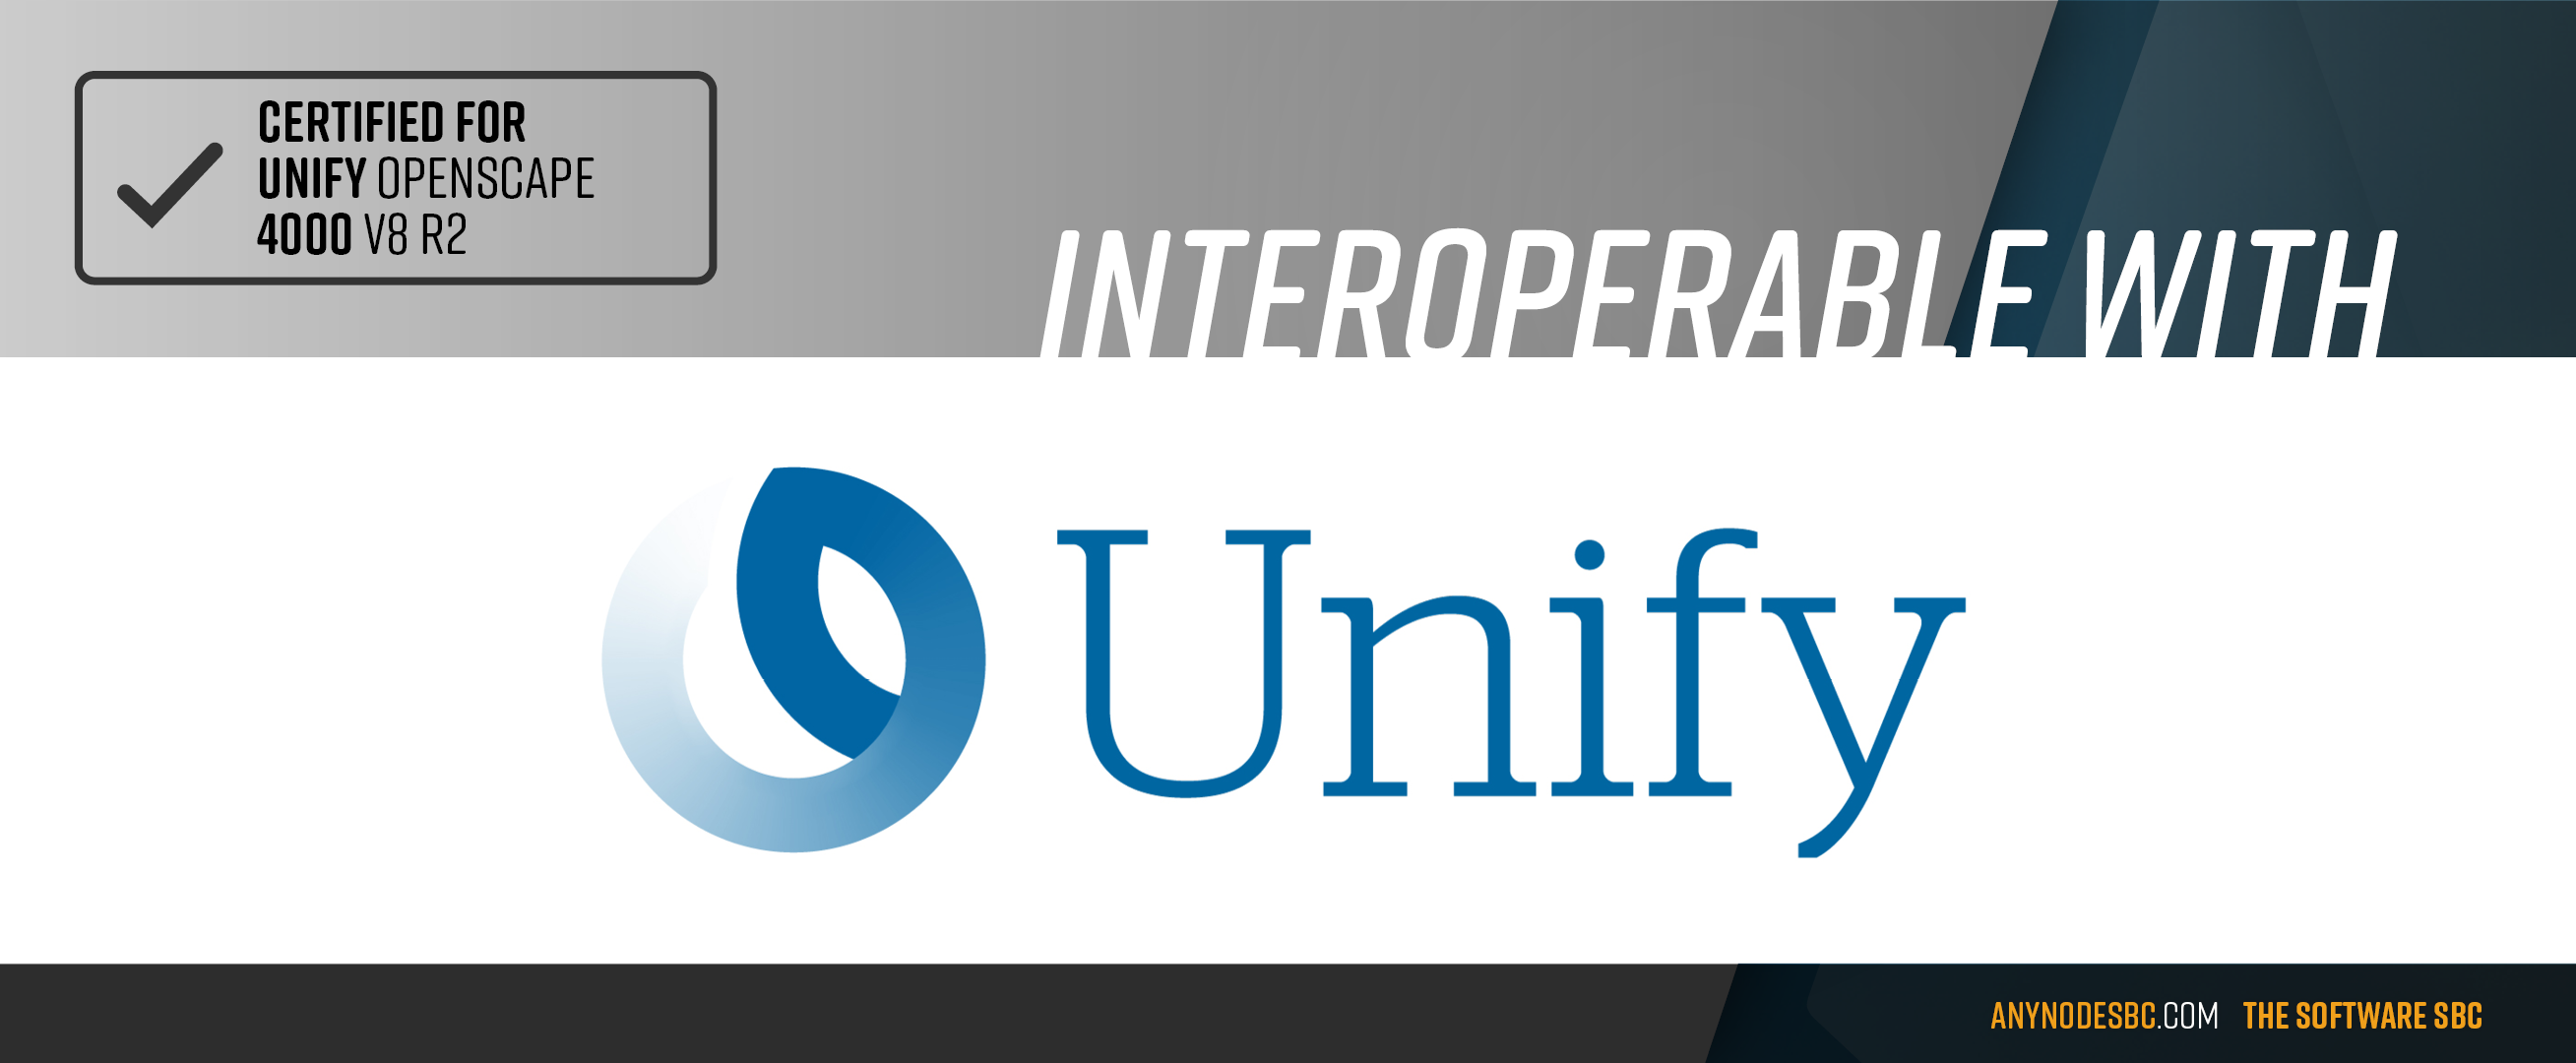 TE-SYSTEMS' anynode is certified to Atos Unify Open Scape 4000 V8 R2